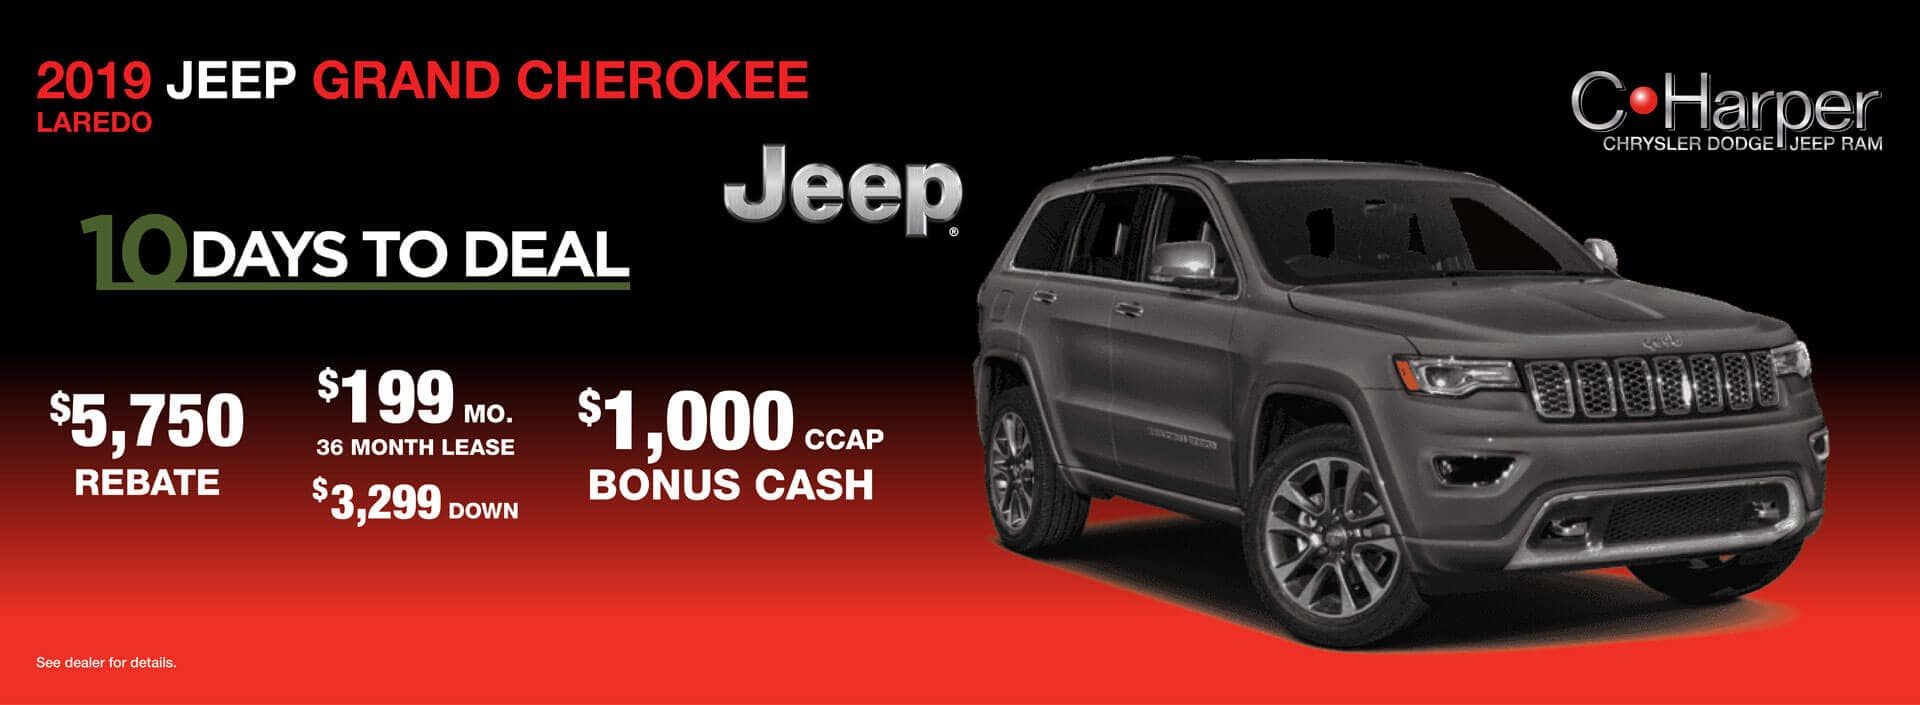 10 Days to Deal: Jeep Grand Cherokee